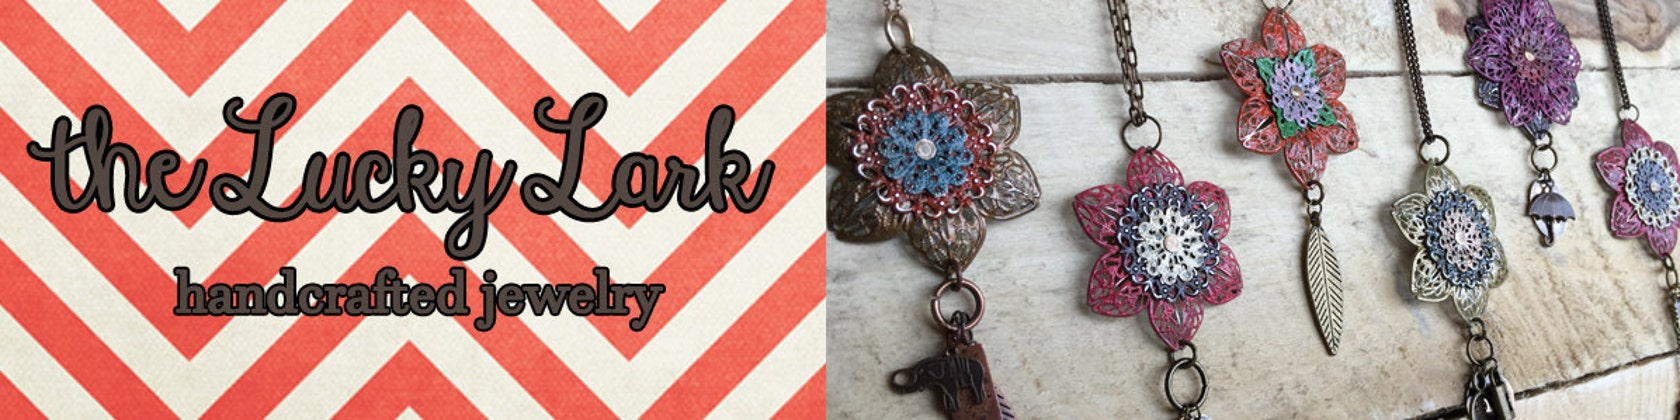 handcrafted jewelry made with love in michigan by theluckylark